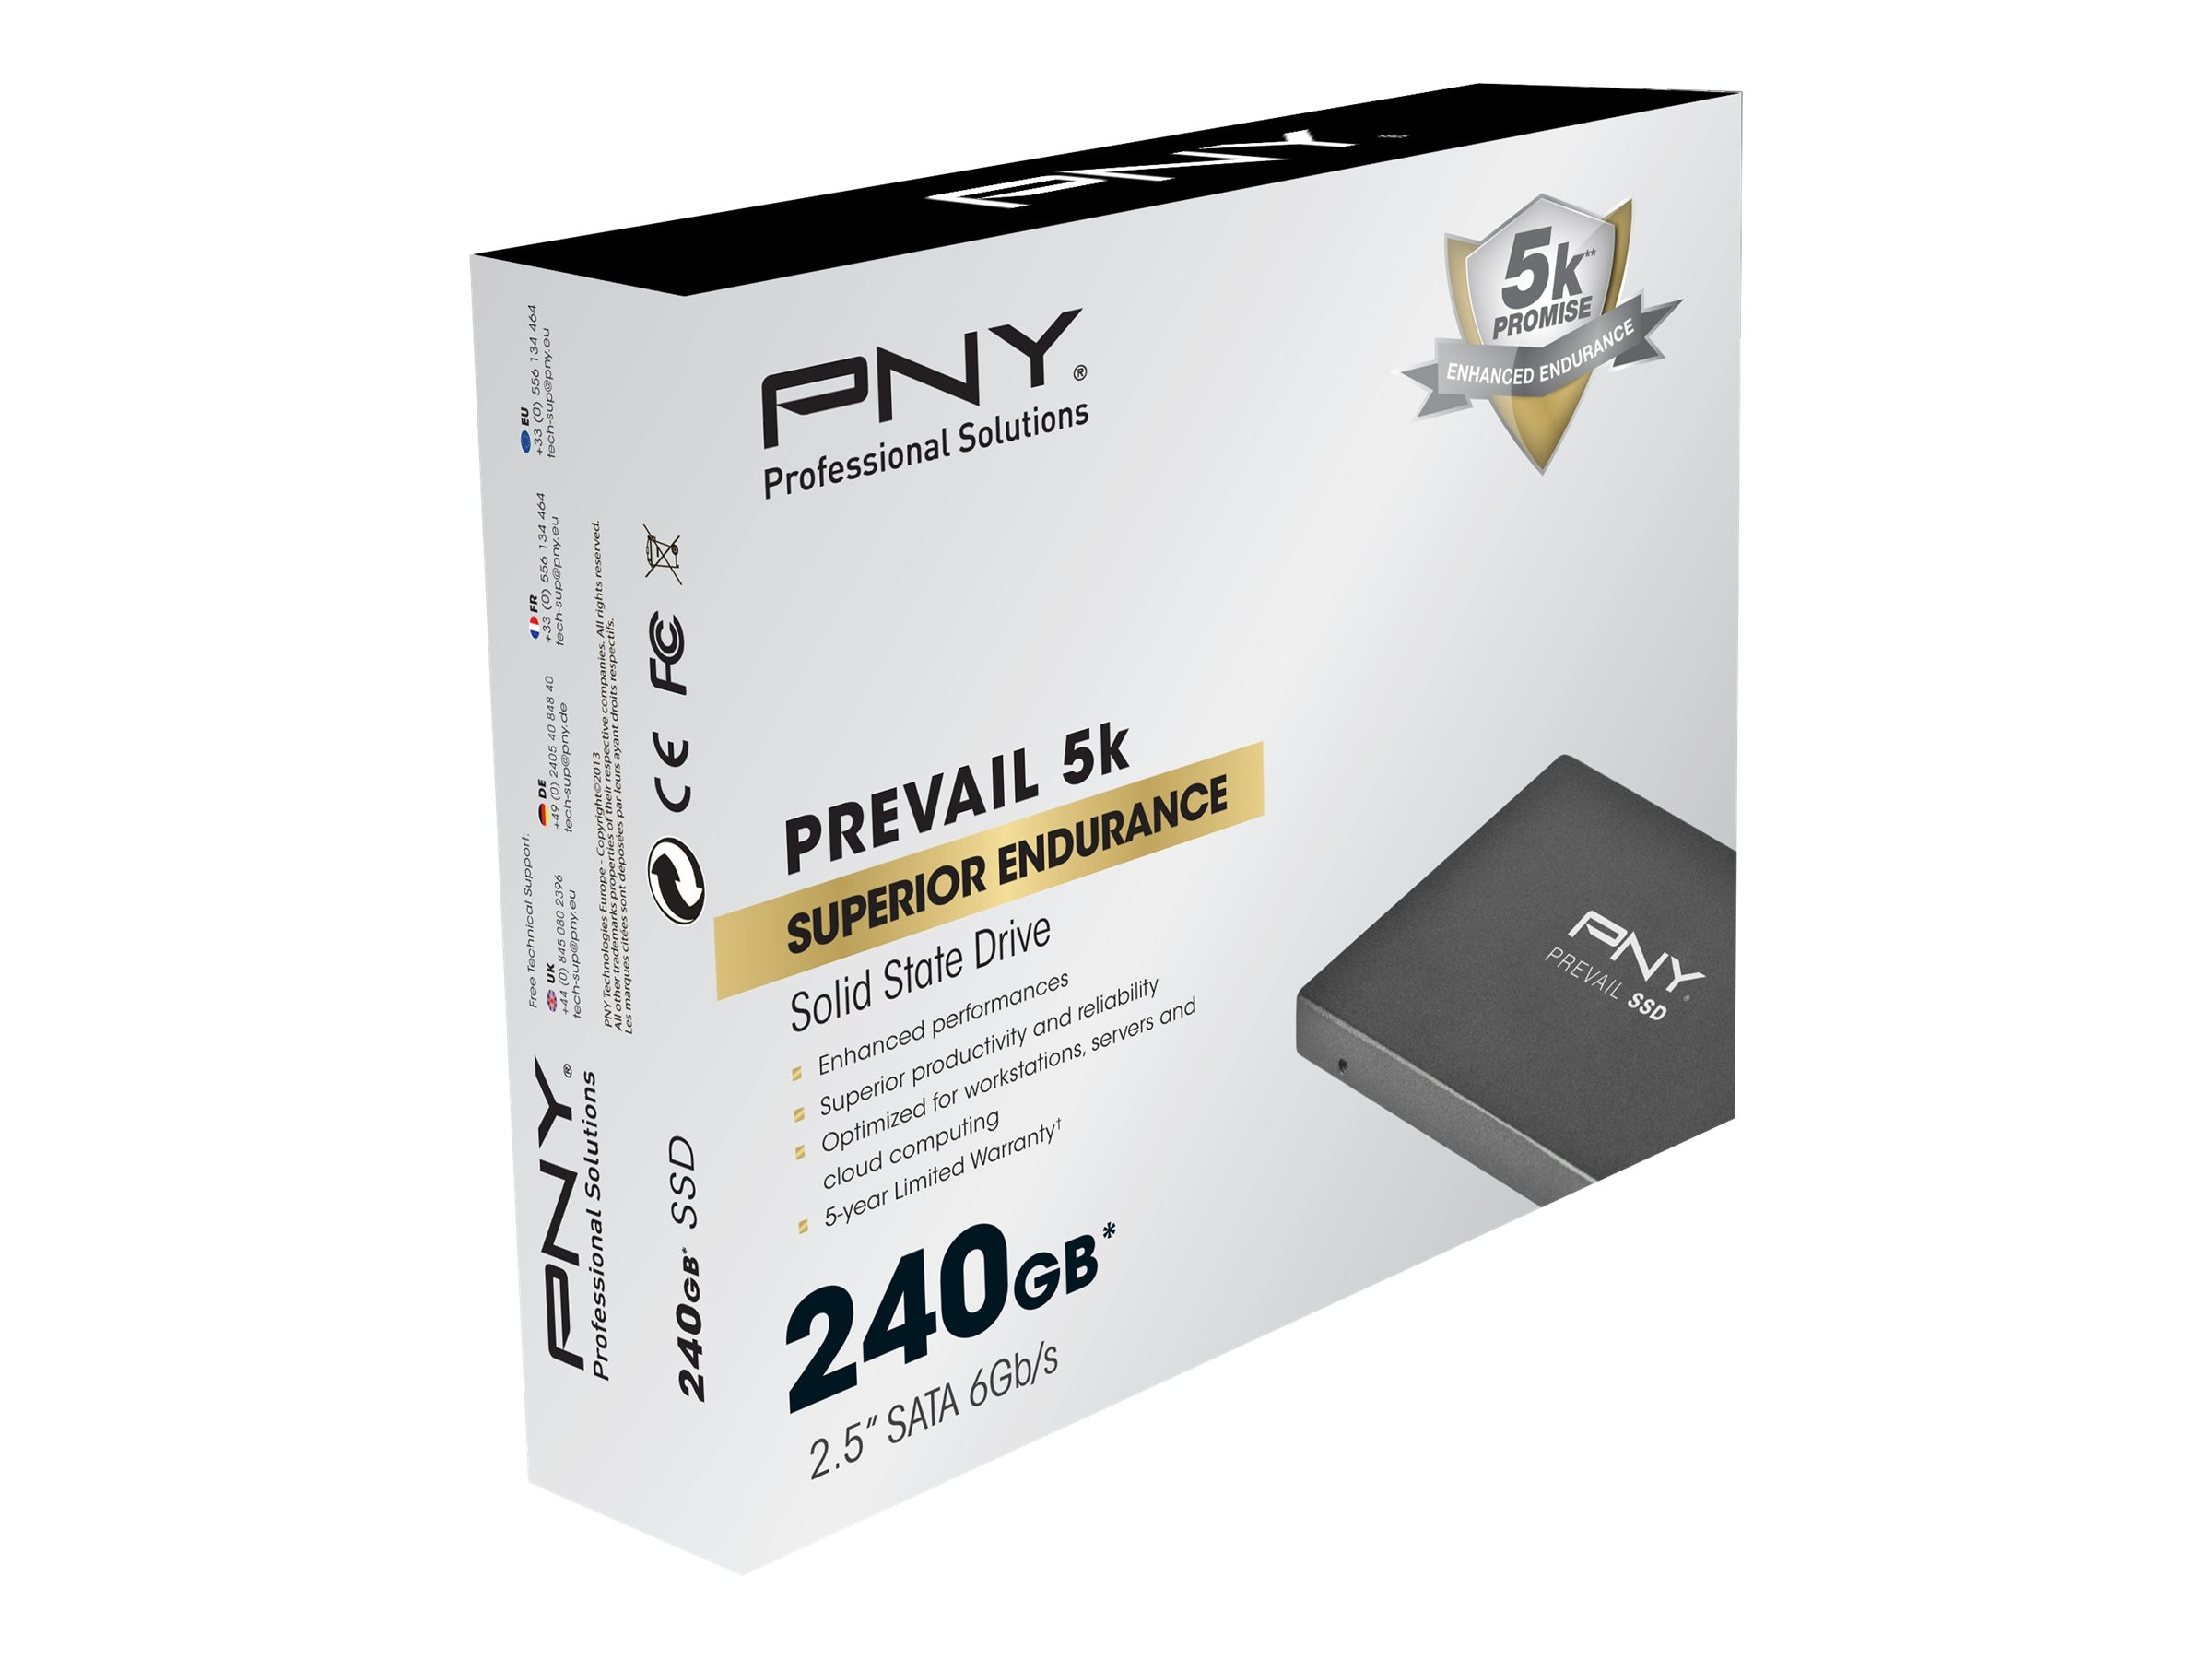 PNY 240GB Prevail 2.5 7mm Internal Solid State Drive, SSD7SC240GDDH-PB, 16198939, Solid State Drives - Internal